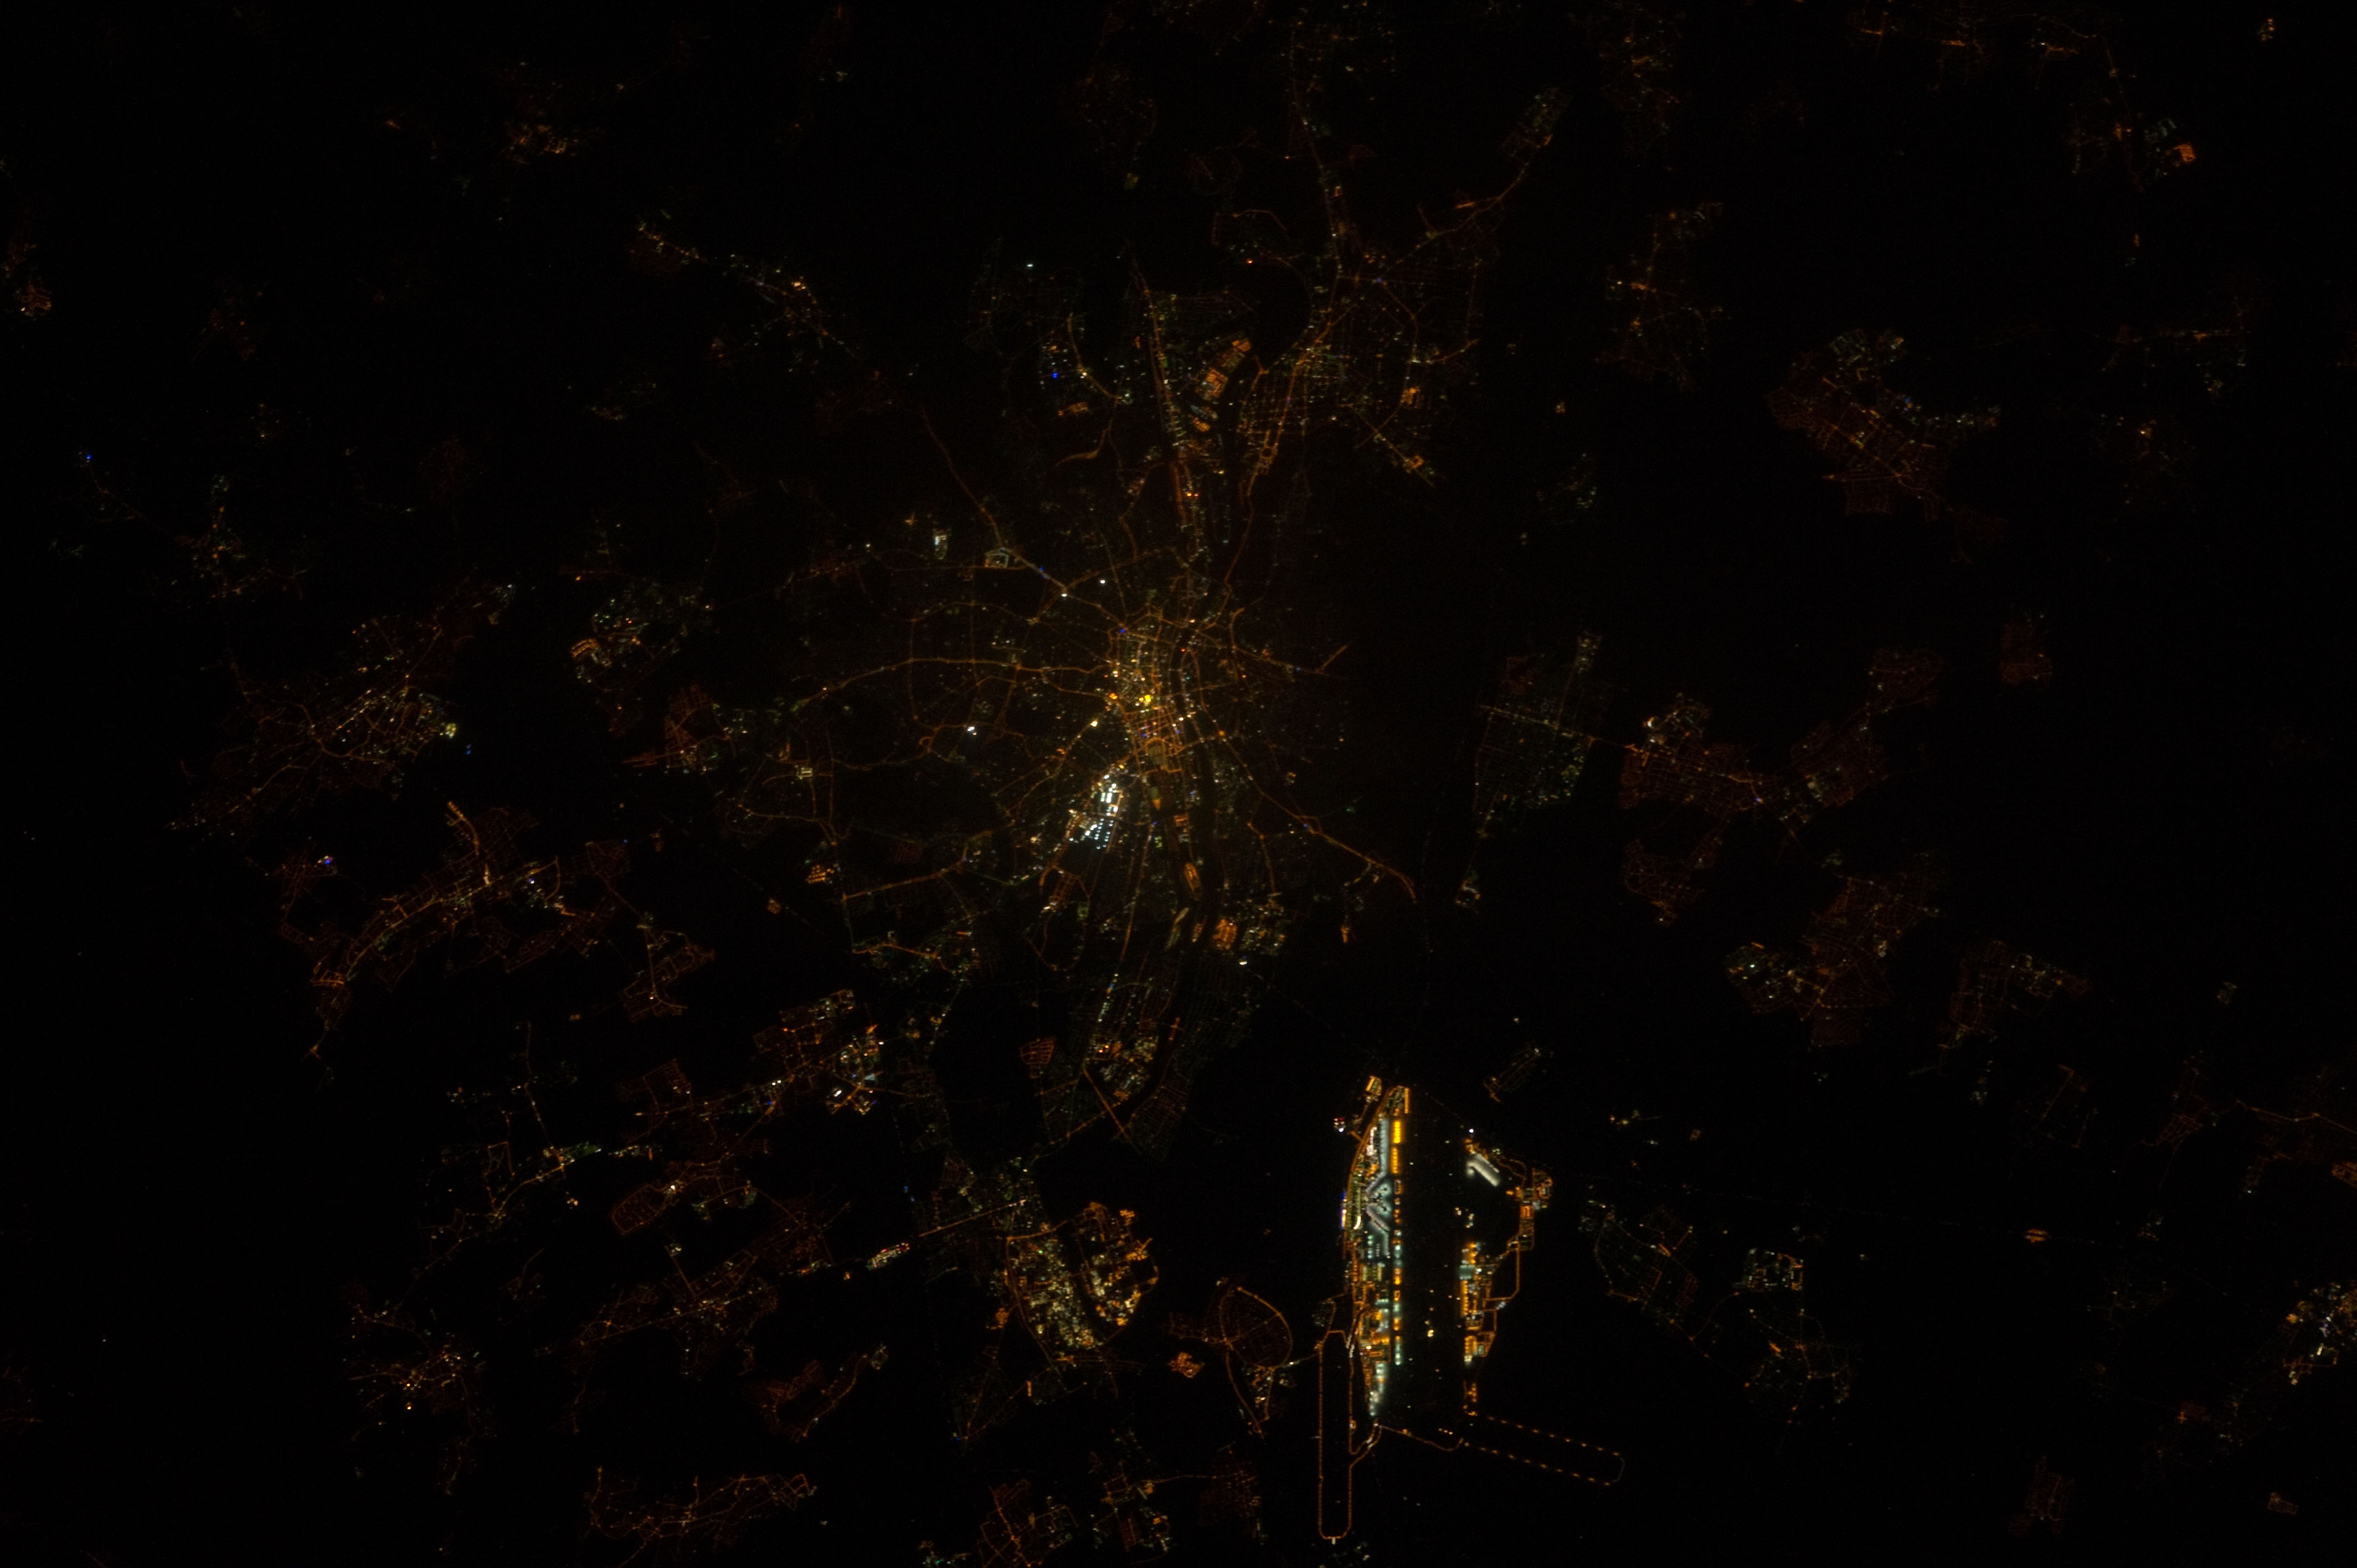 Frankfurt bei Nacht - ISS030-E-217472 - Image courtesy of the Earth Science and Remote Sensing Unit, NASA Johnson Space Center